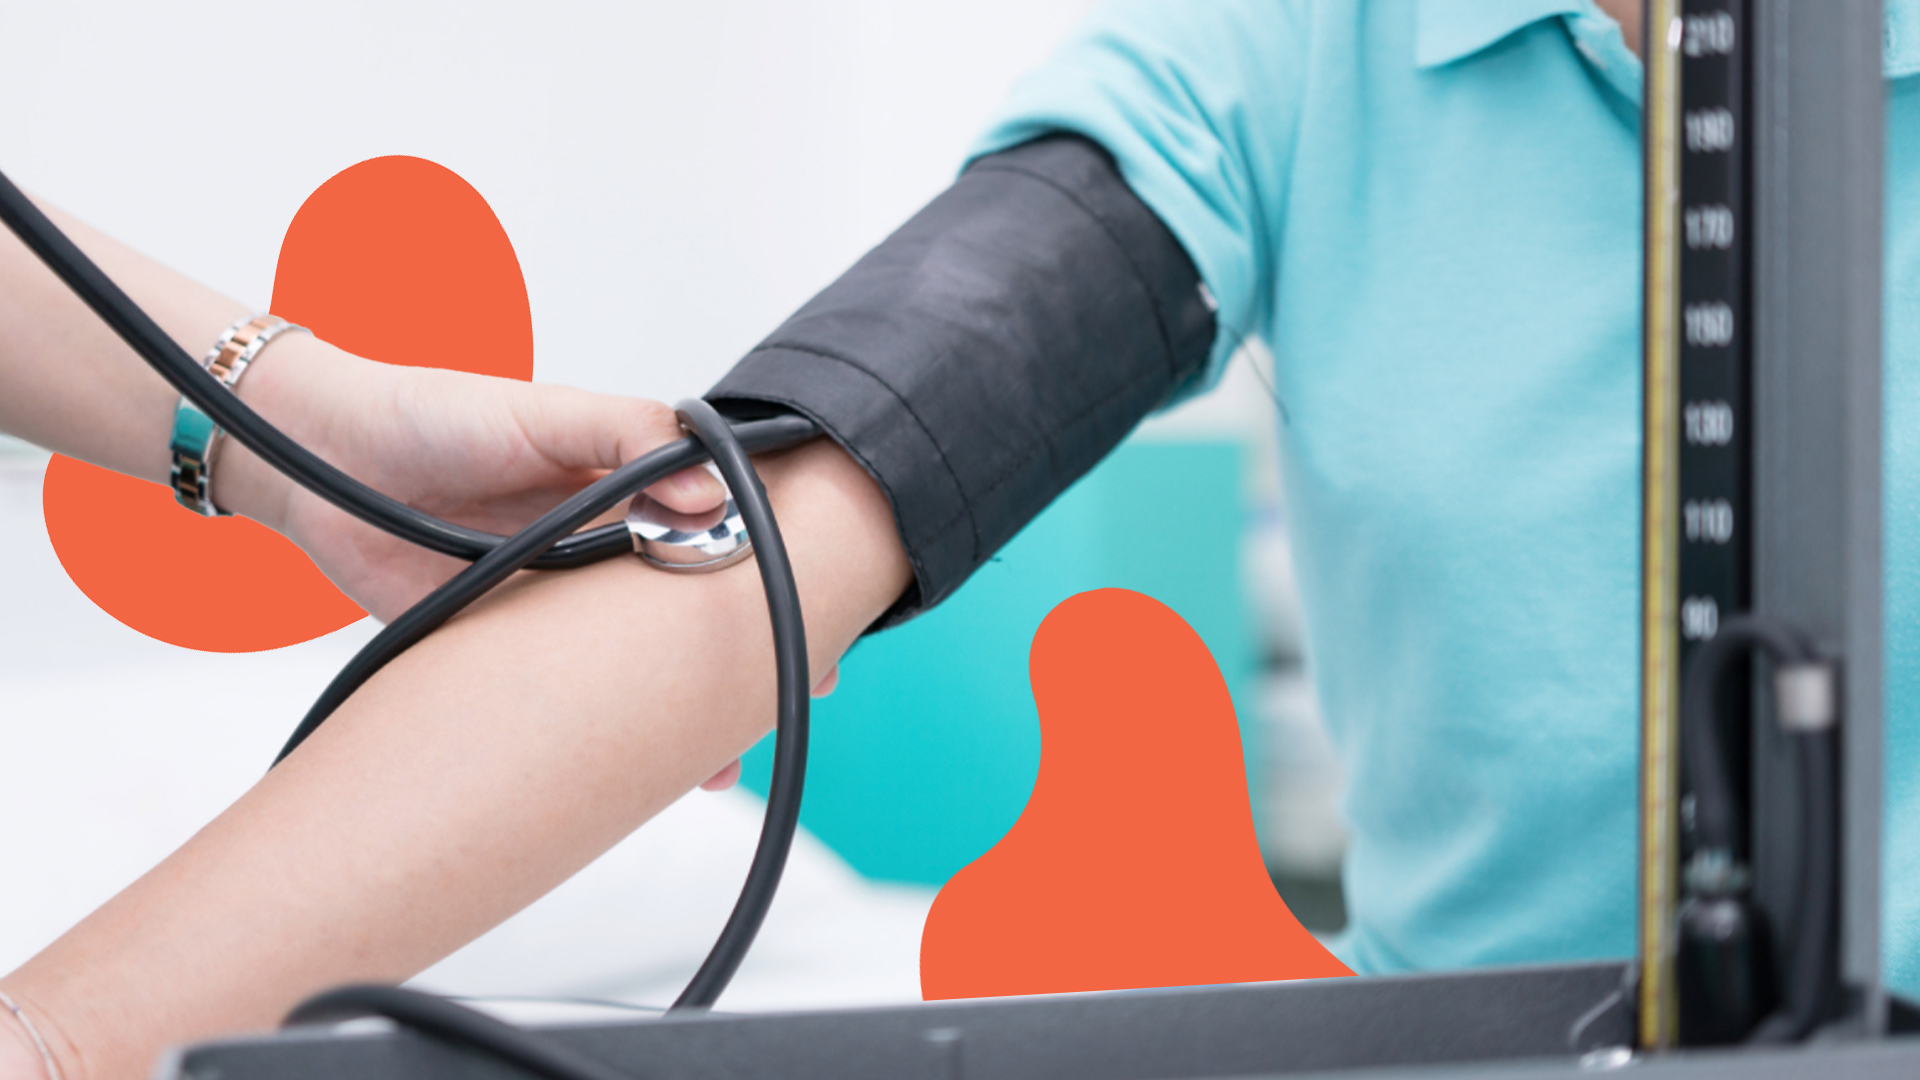 5 Top Reasons to Visit a Telemedicine Walk-In Clinic Instead of an ER